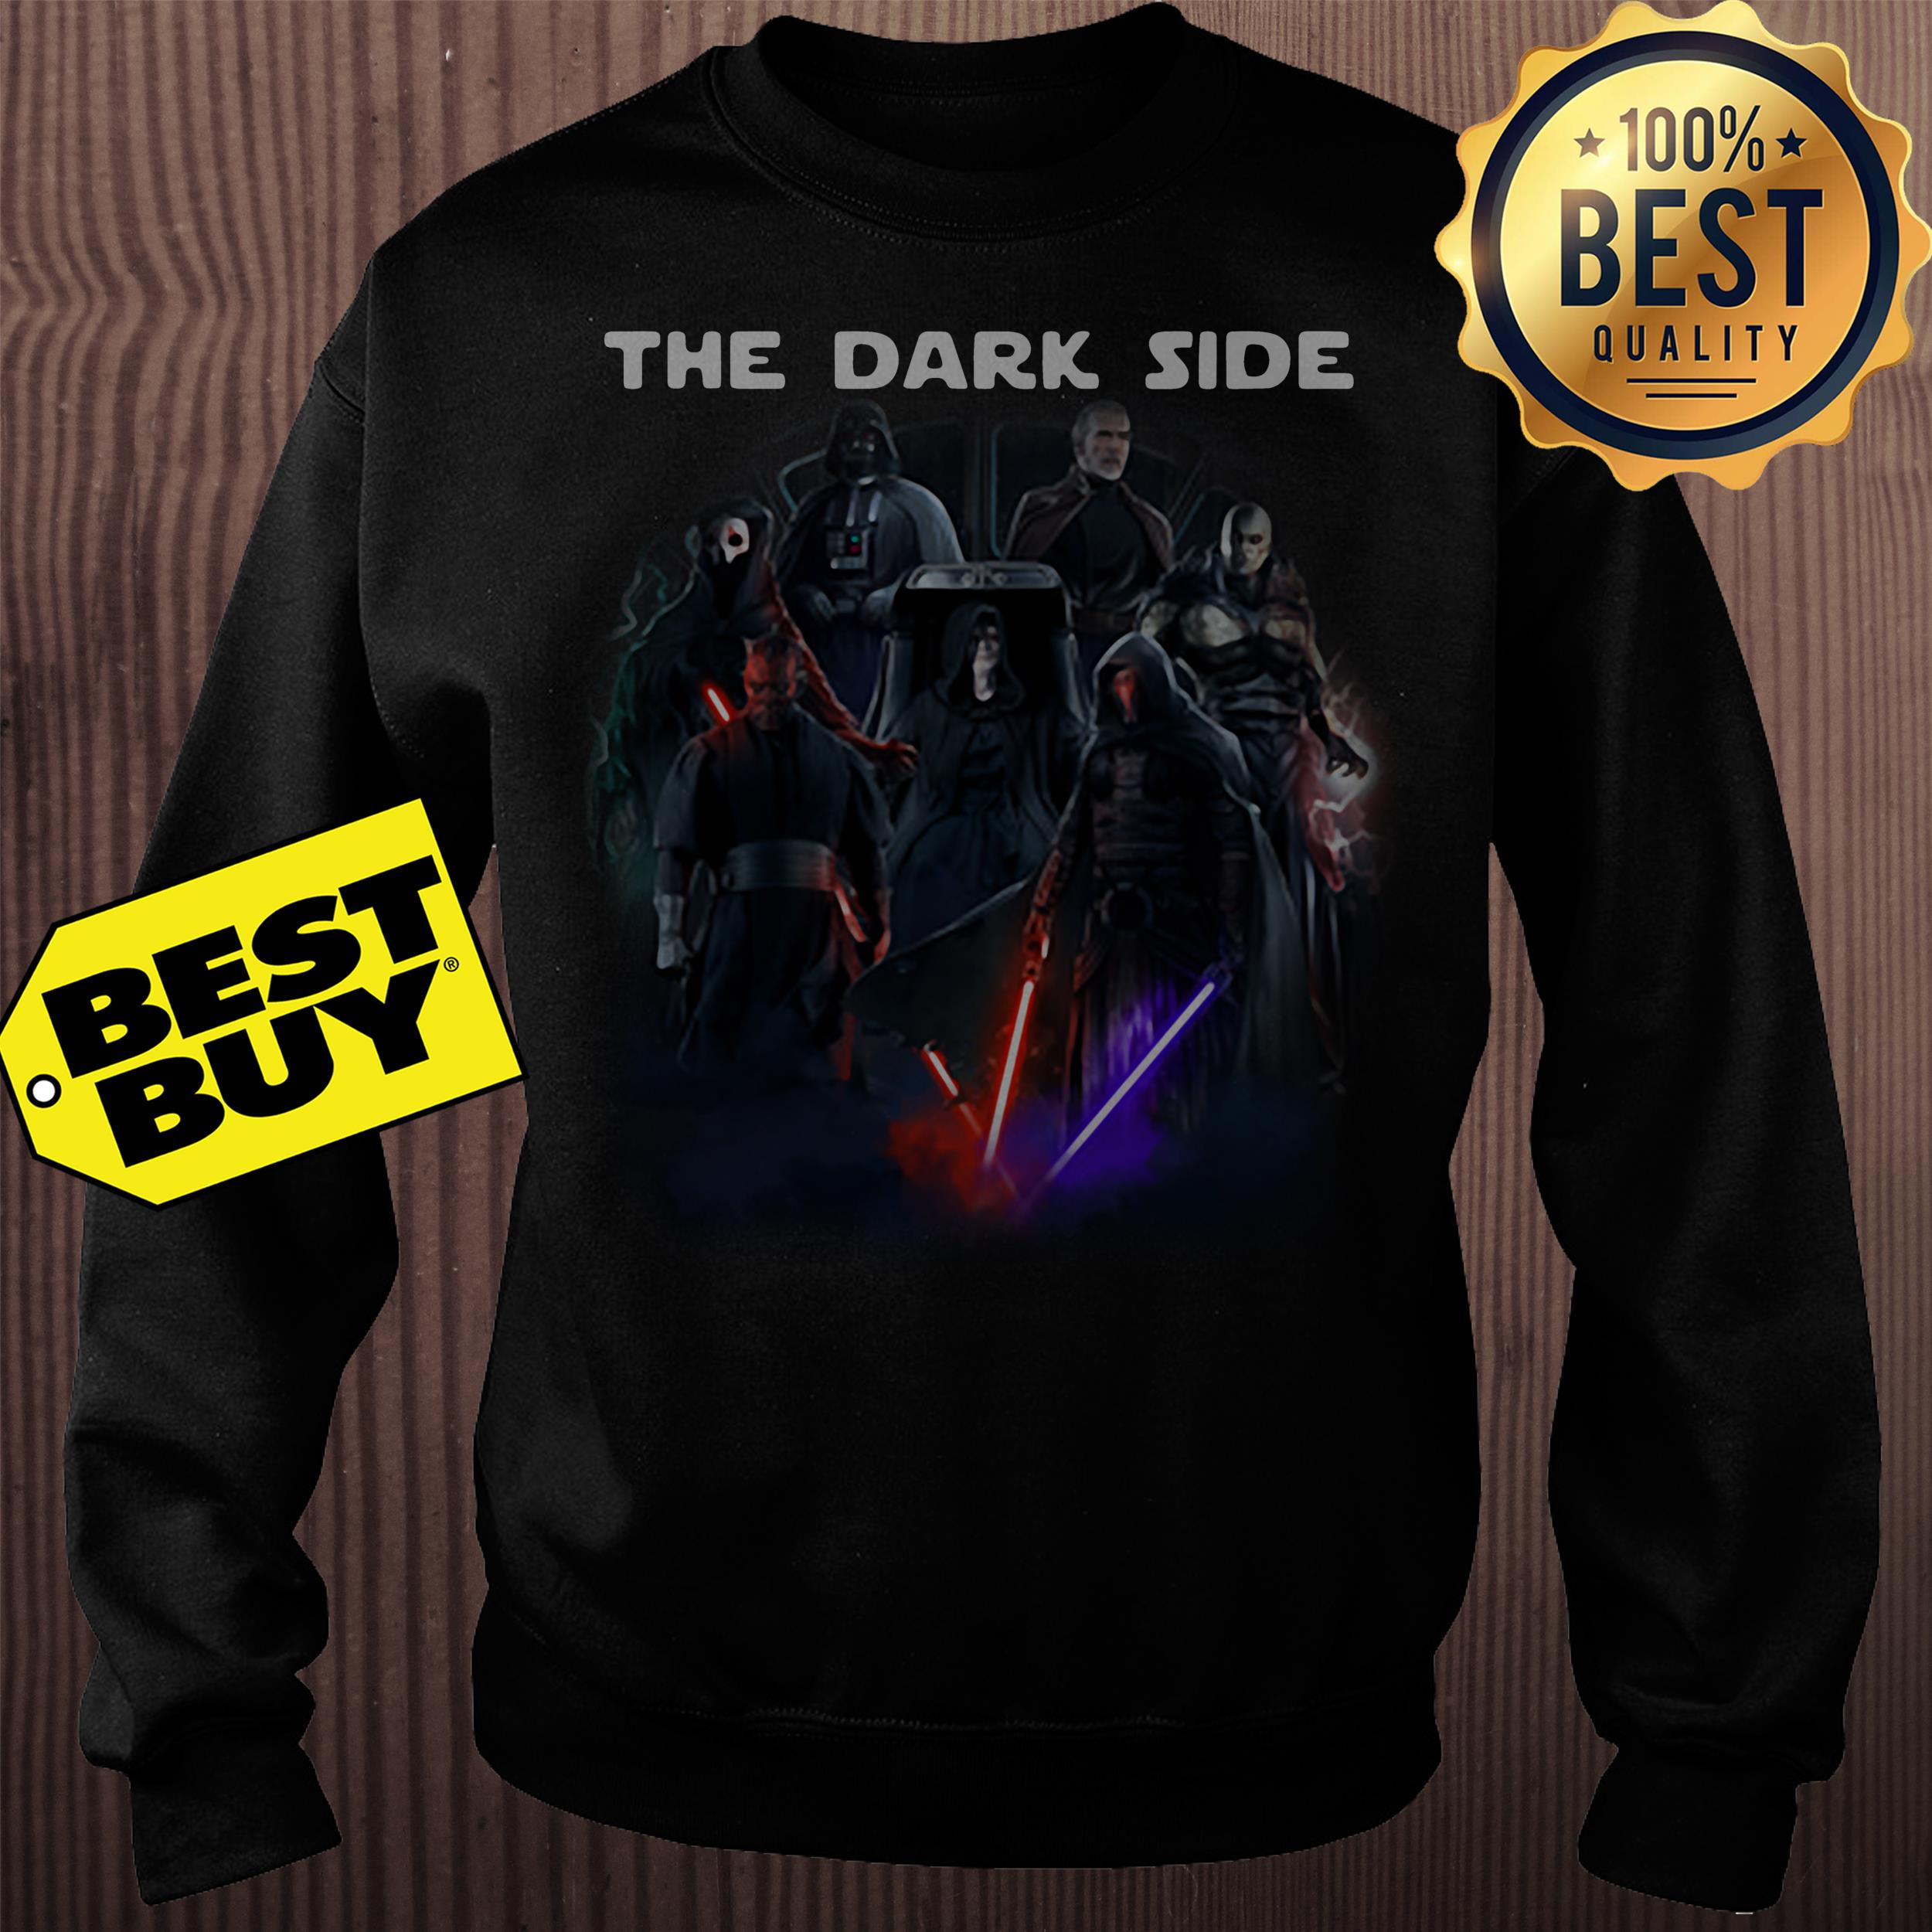 Official The Dark side sweatshirt